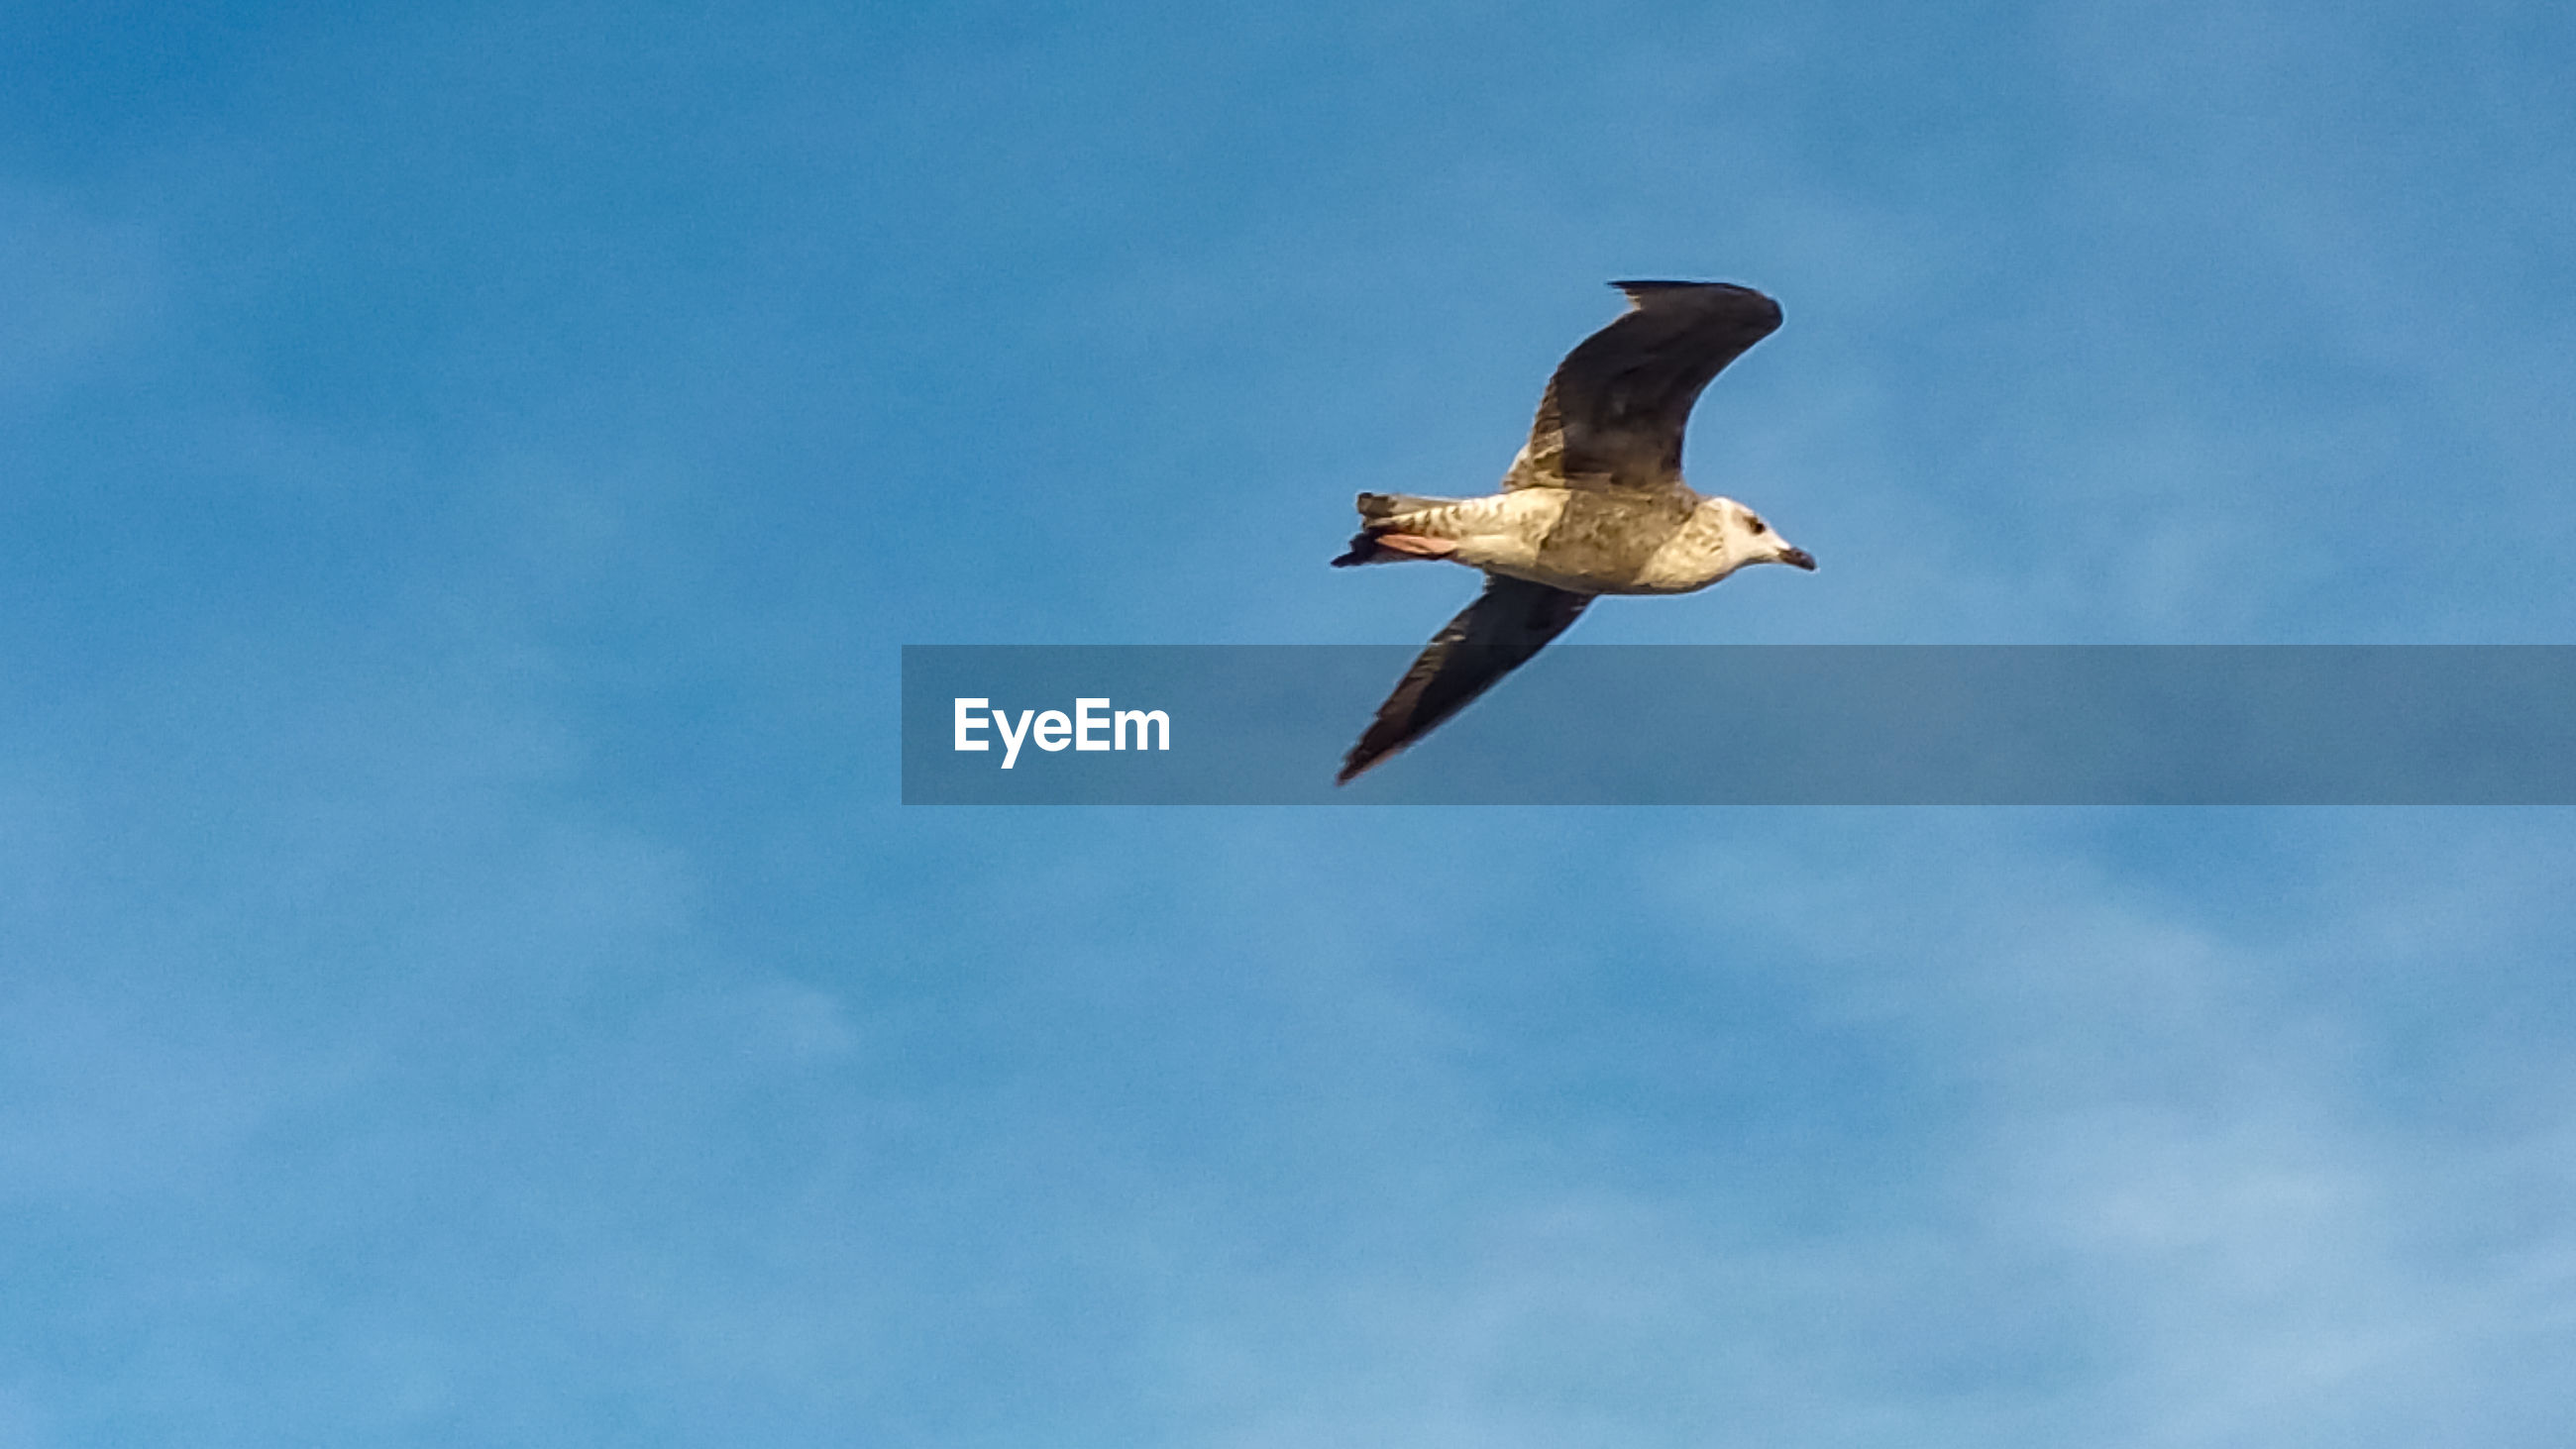 LOW ANGLE VIEW OF SEAGULL FLYING AGAINST BLUE SKY